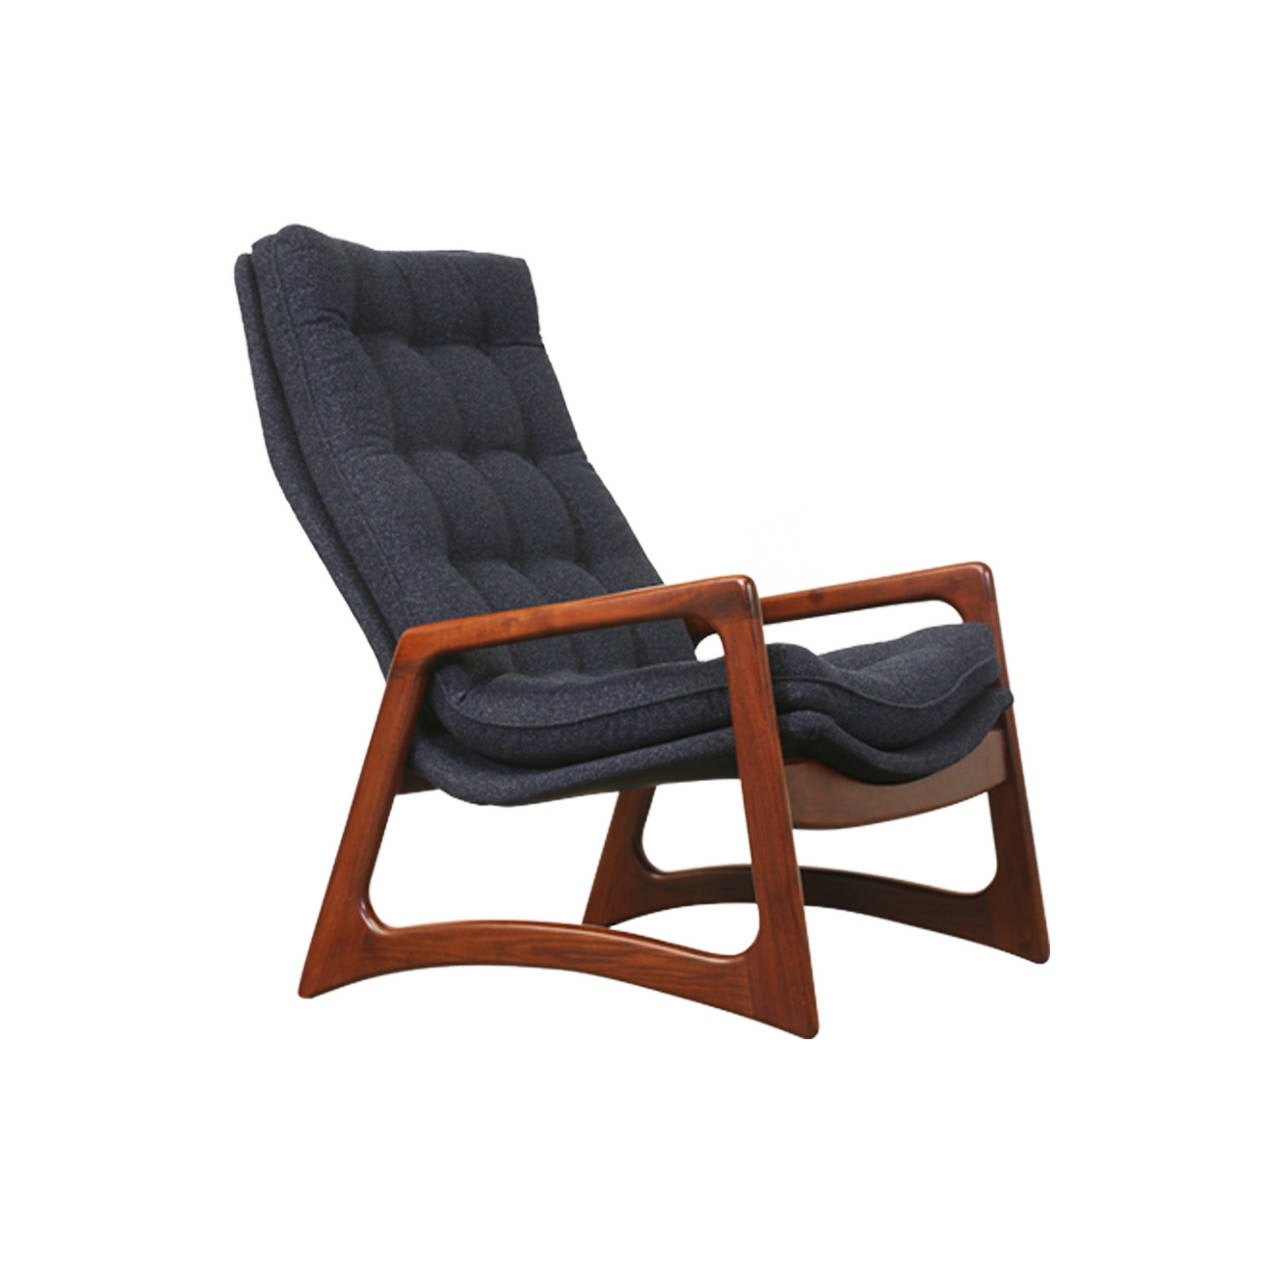 adrian pearsall lounge chair harvard for sale high back tufted craft